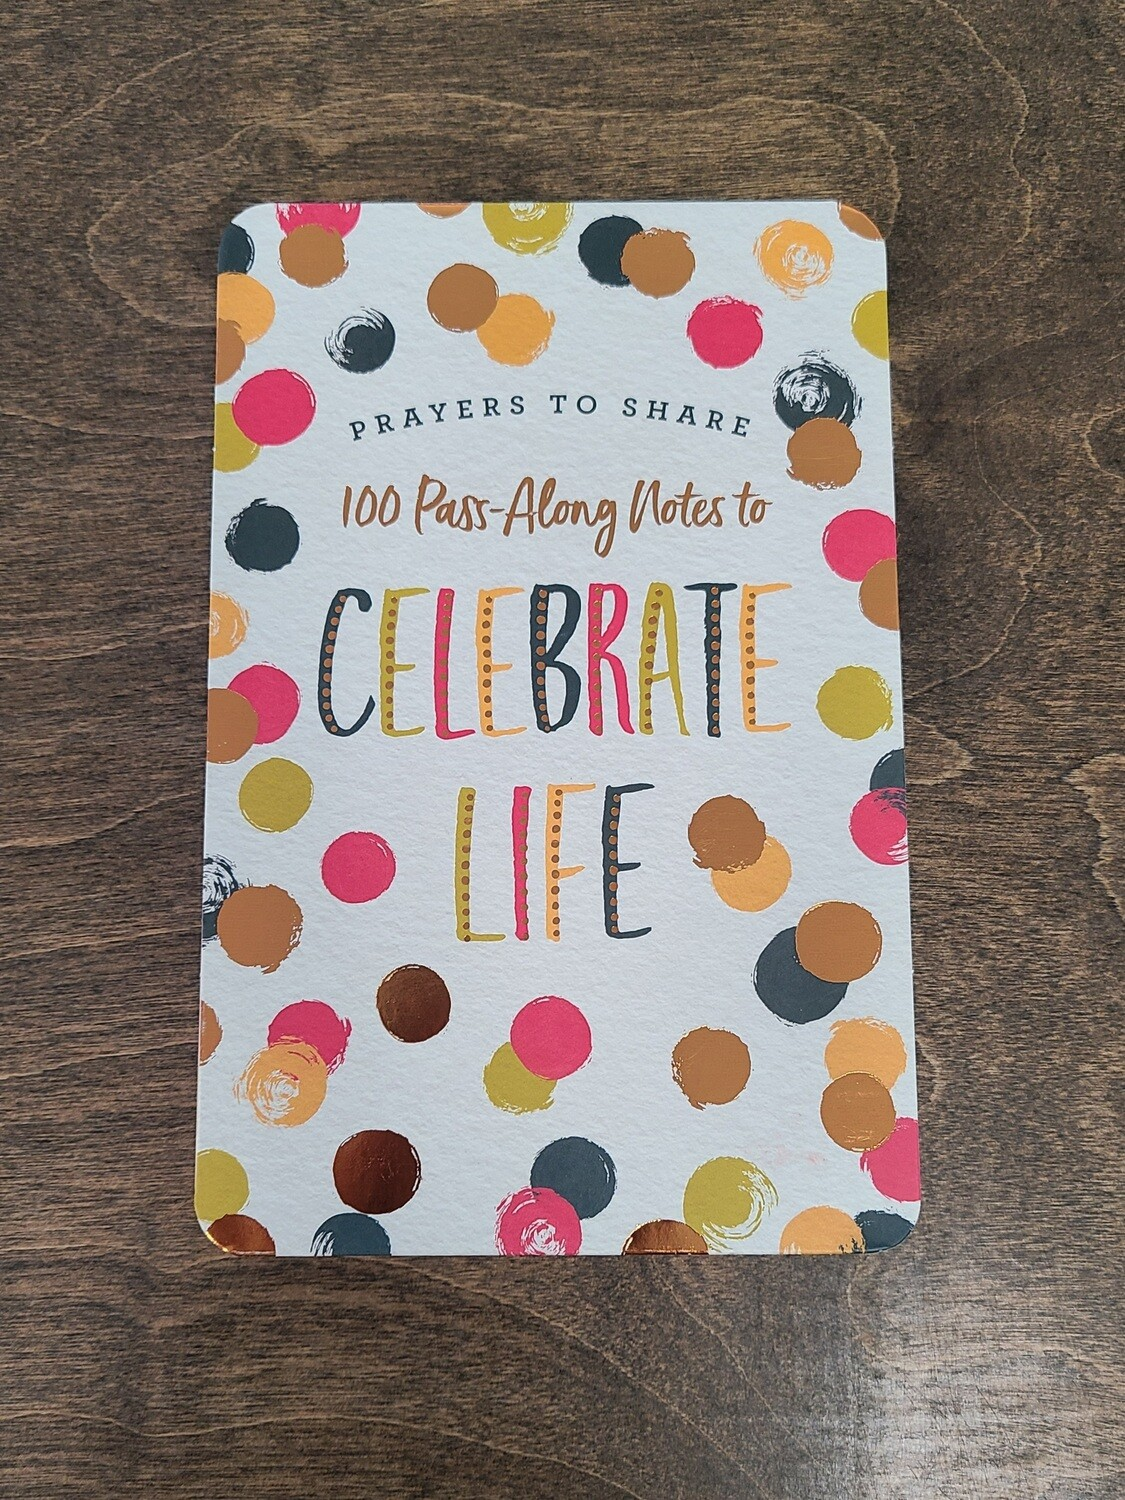 100 Pass-Along Prayers to Share Notes to Celebrate Life